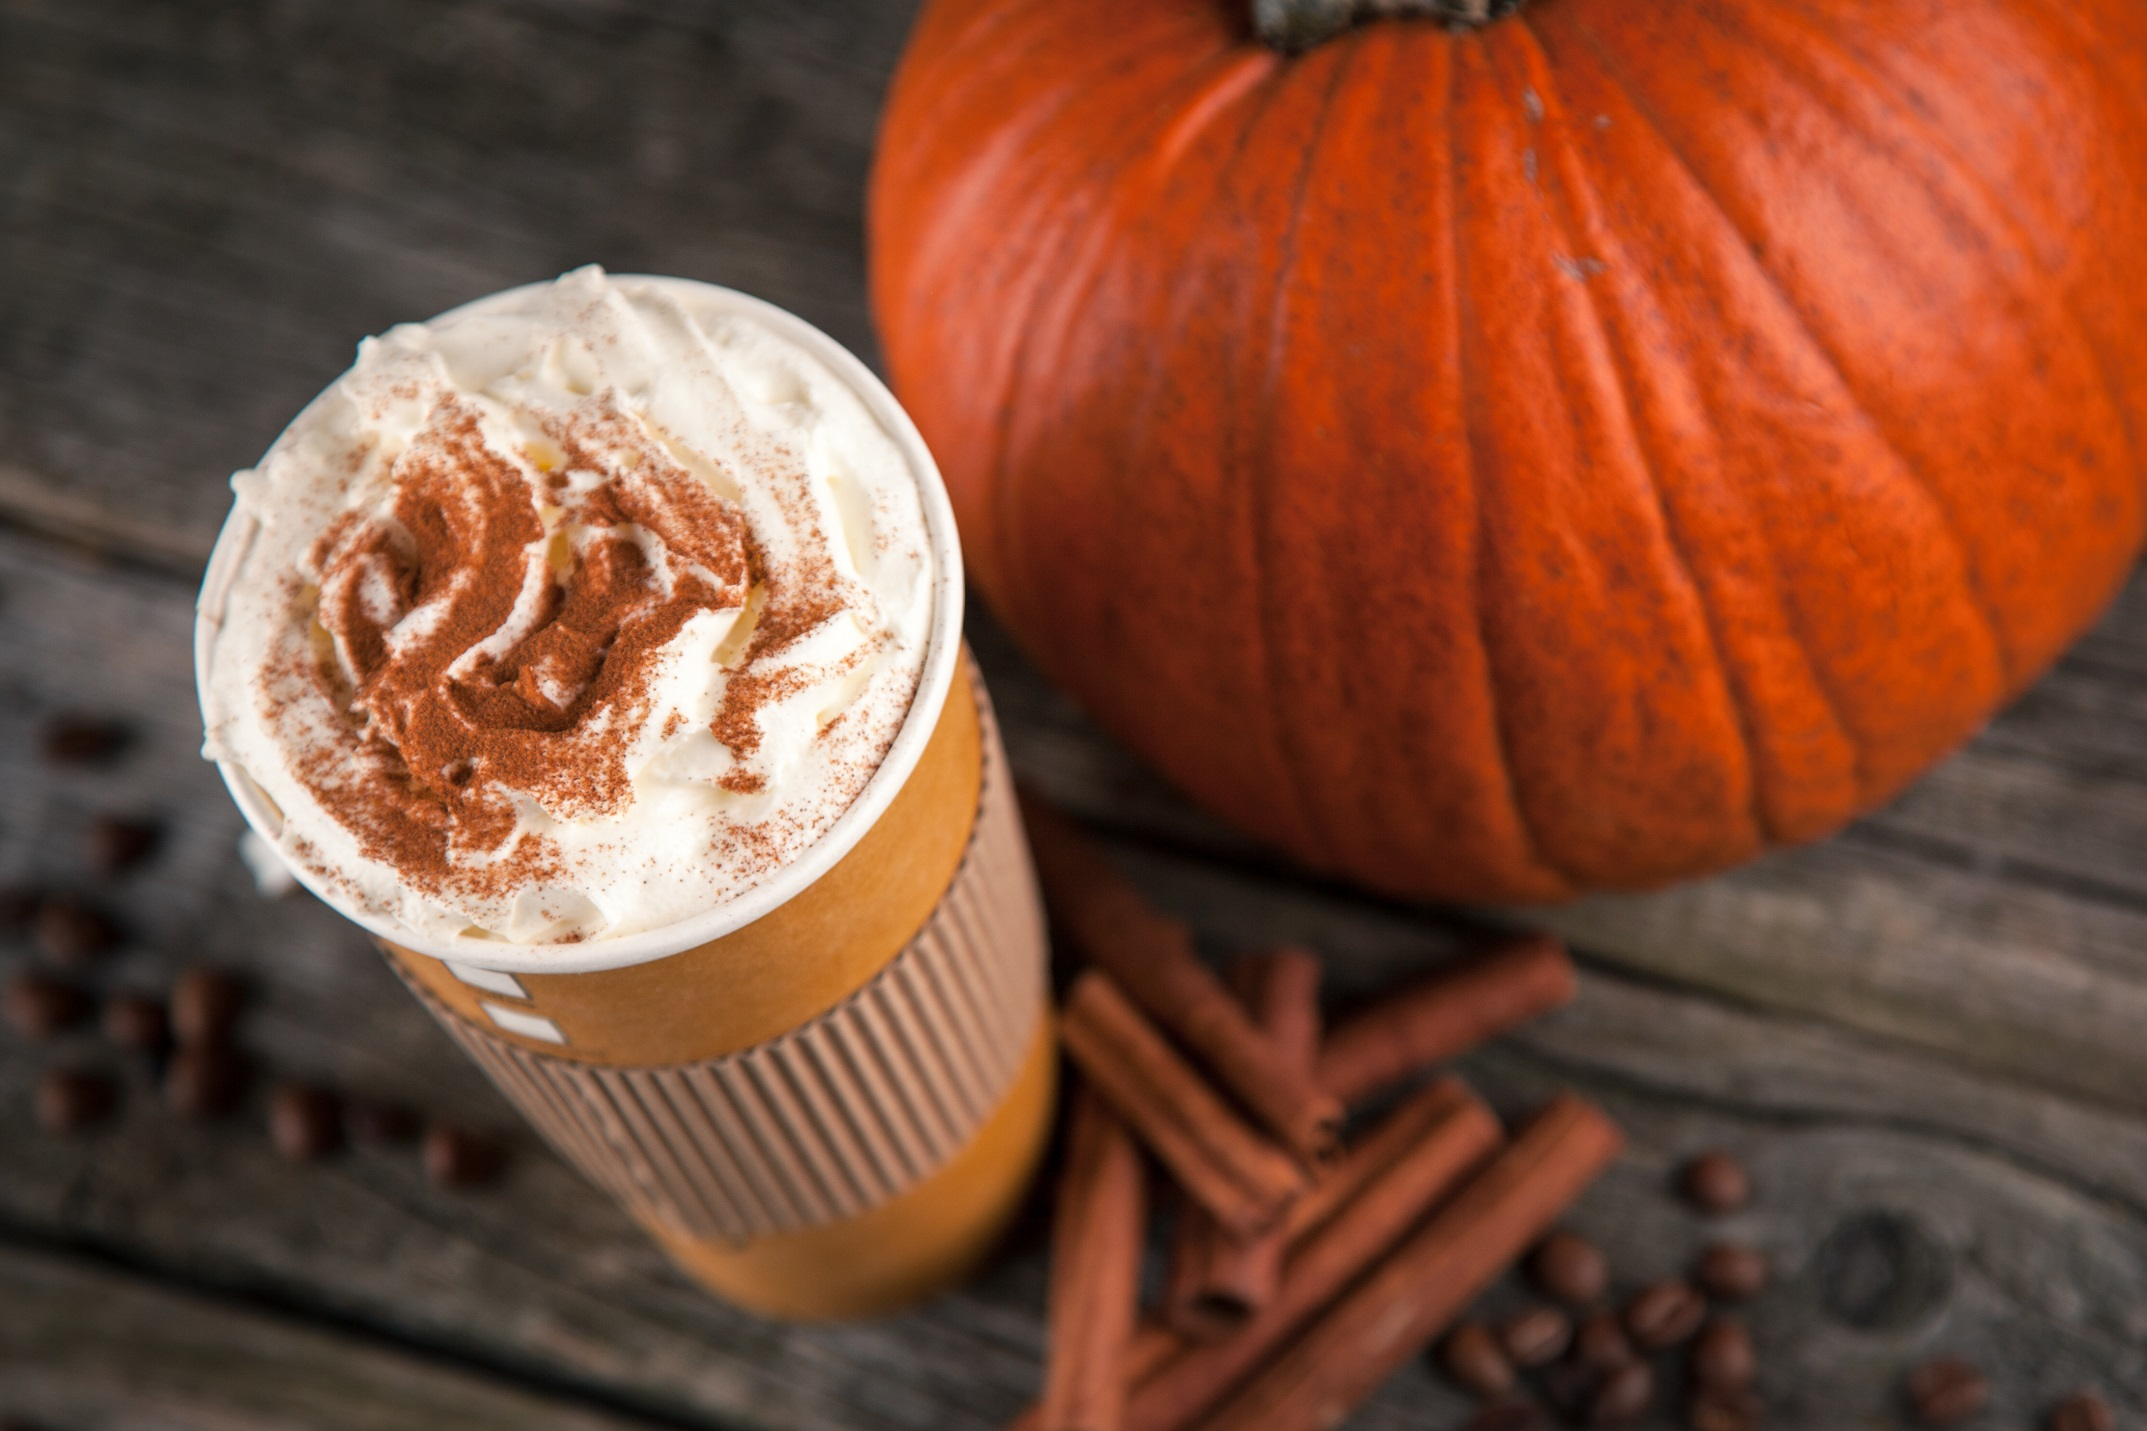 the pumpkin spice latte a cultural This pumpkin spice latte recipe uses real pumpkin and can be made two ways, as a light pumpkin spice latte or as a more decadent version.